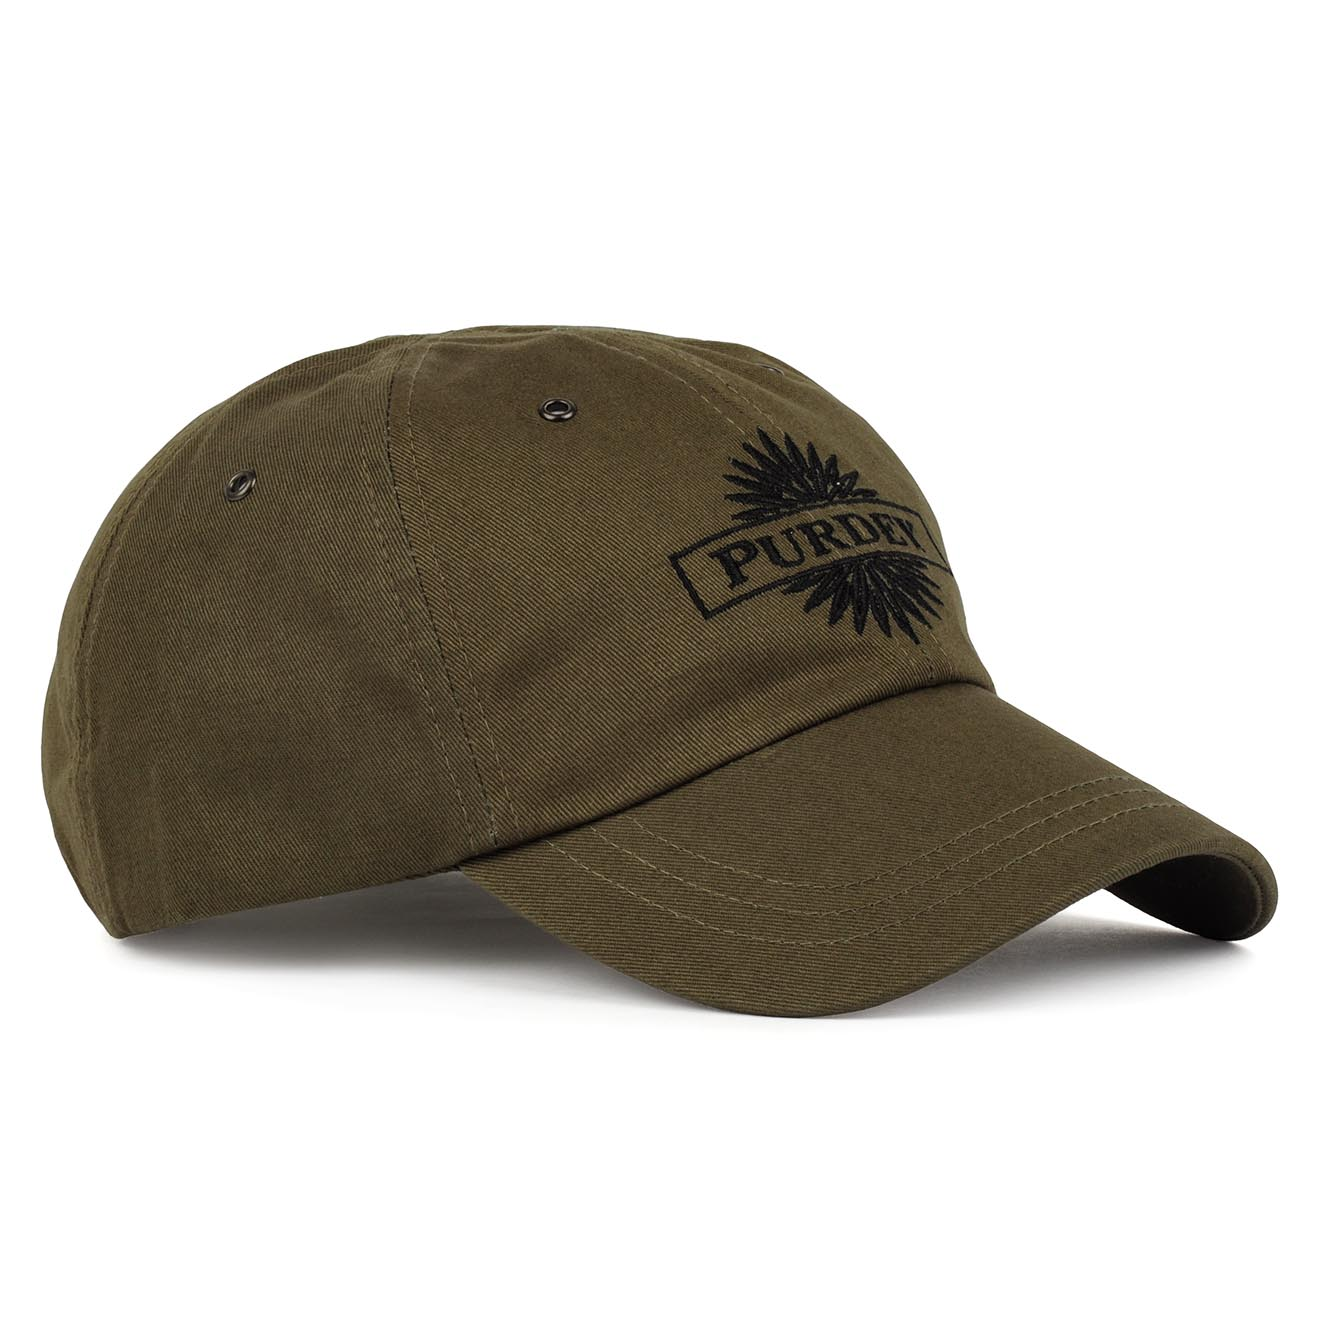 James Purdey Baseball Cap Green - The Sporting Lodge 3838c866711